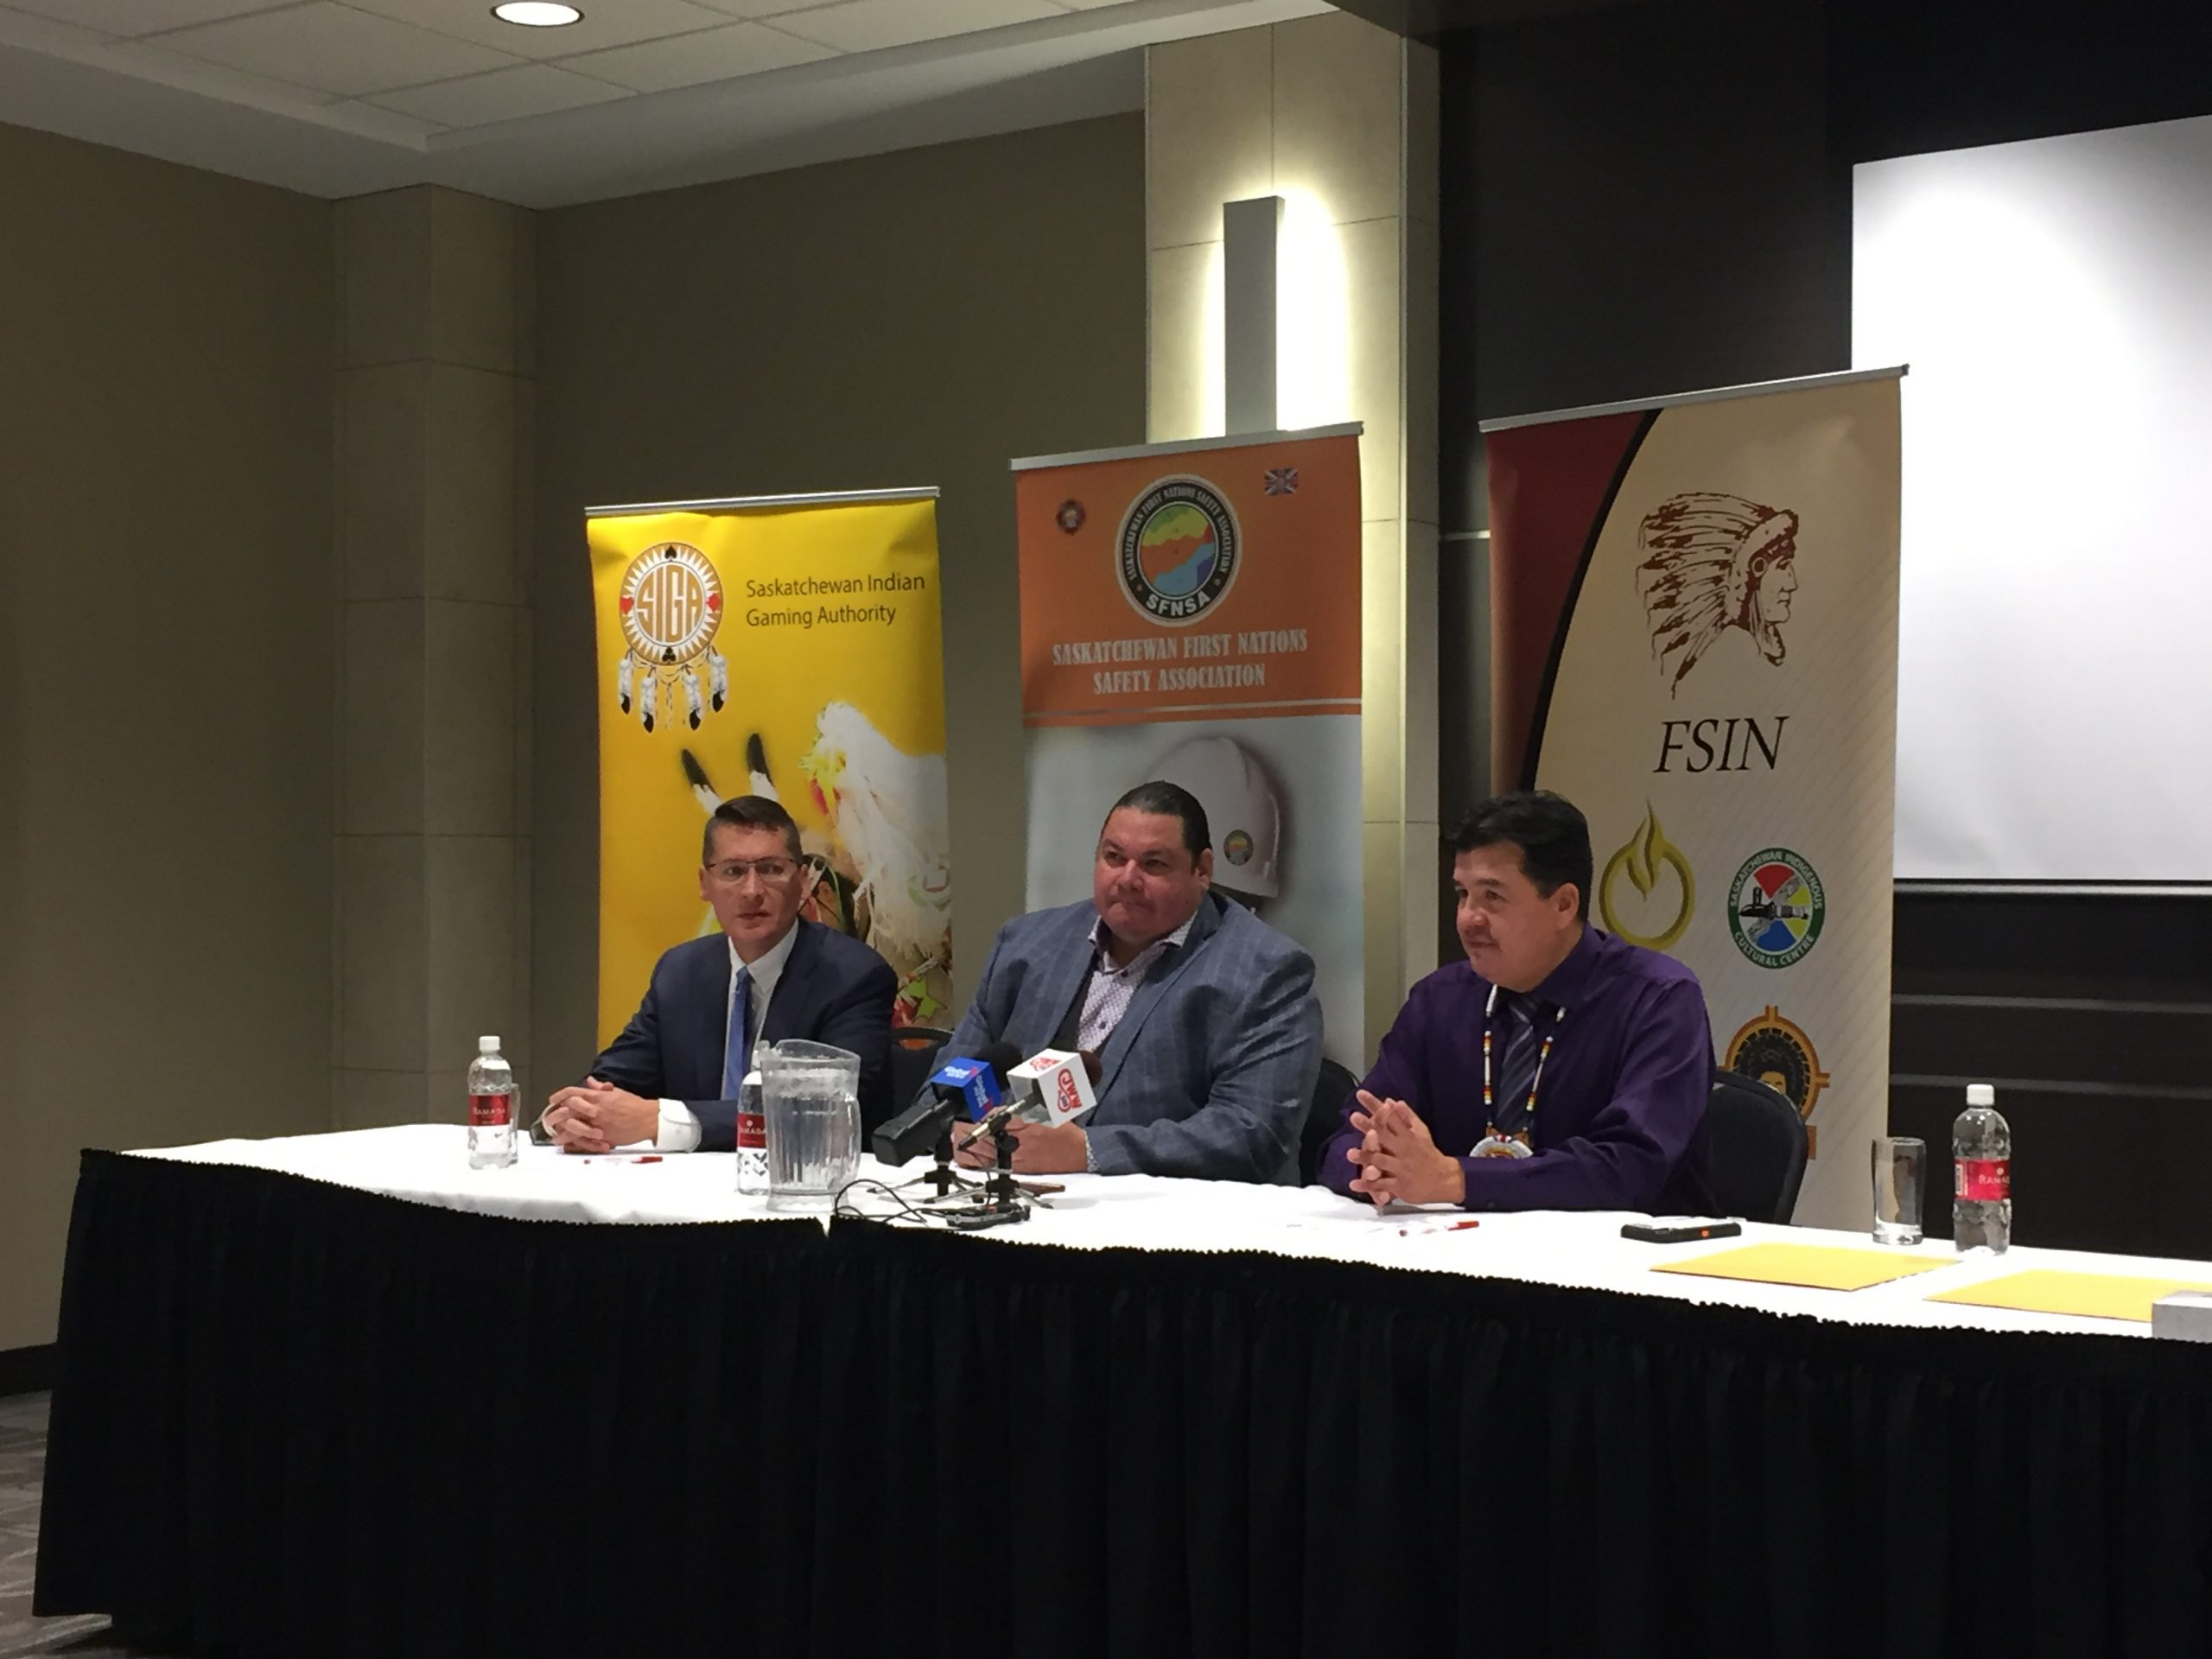 New MOU Signed to Improve Safety in First Nation Communities and Organizations